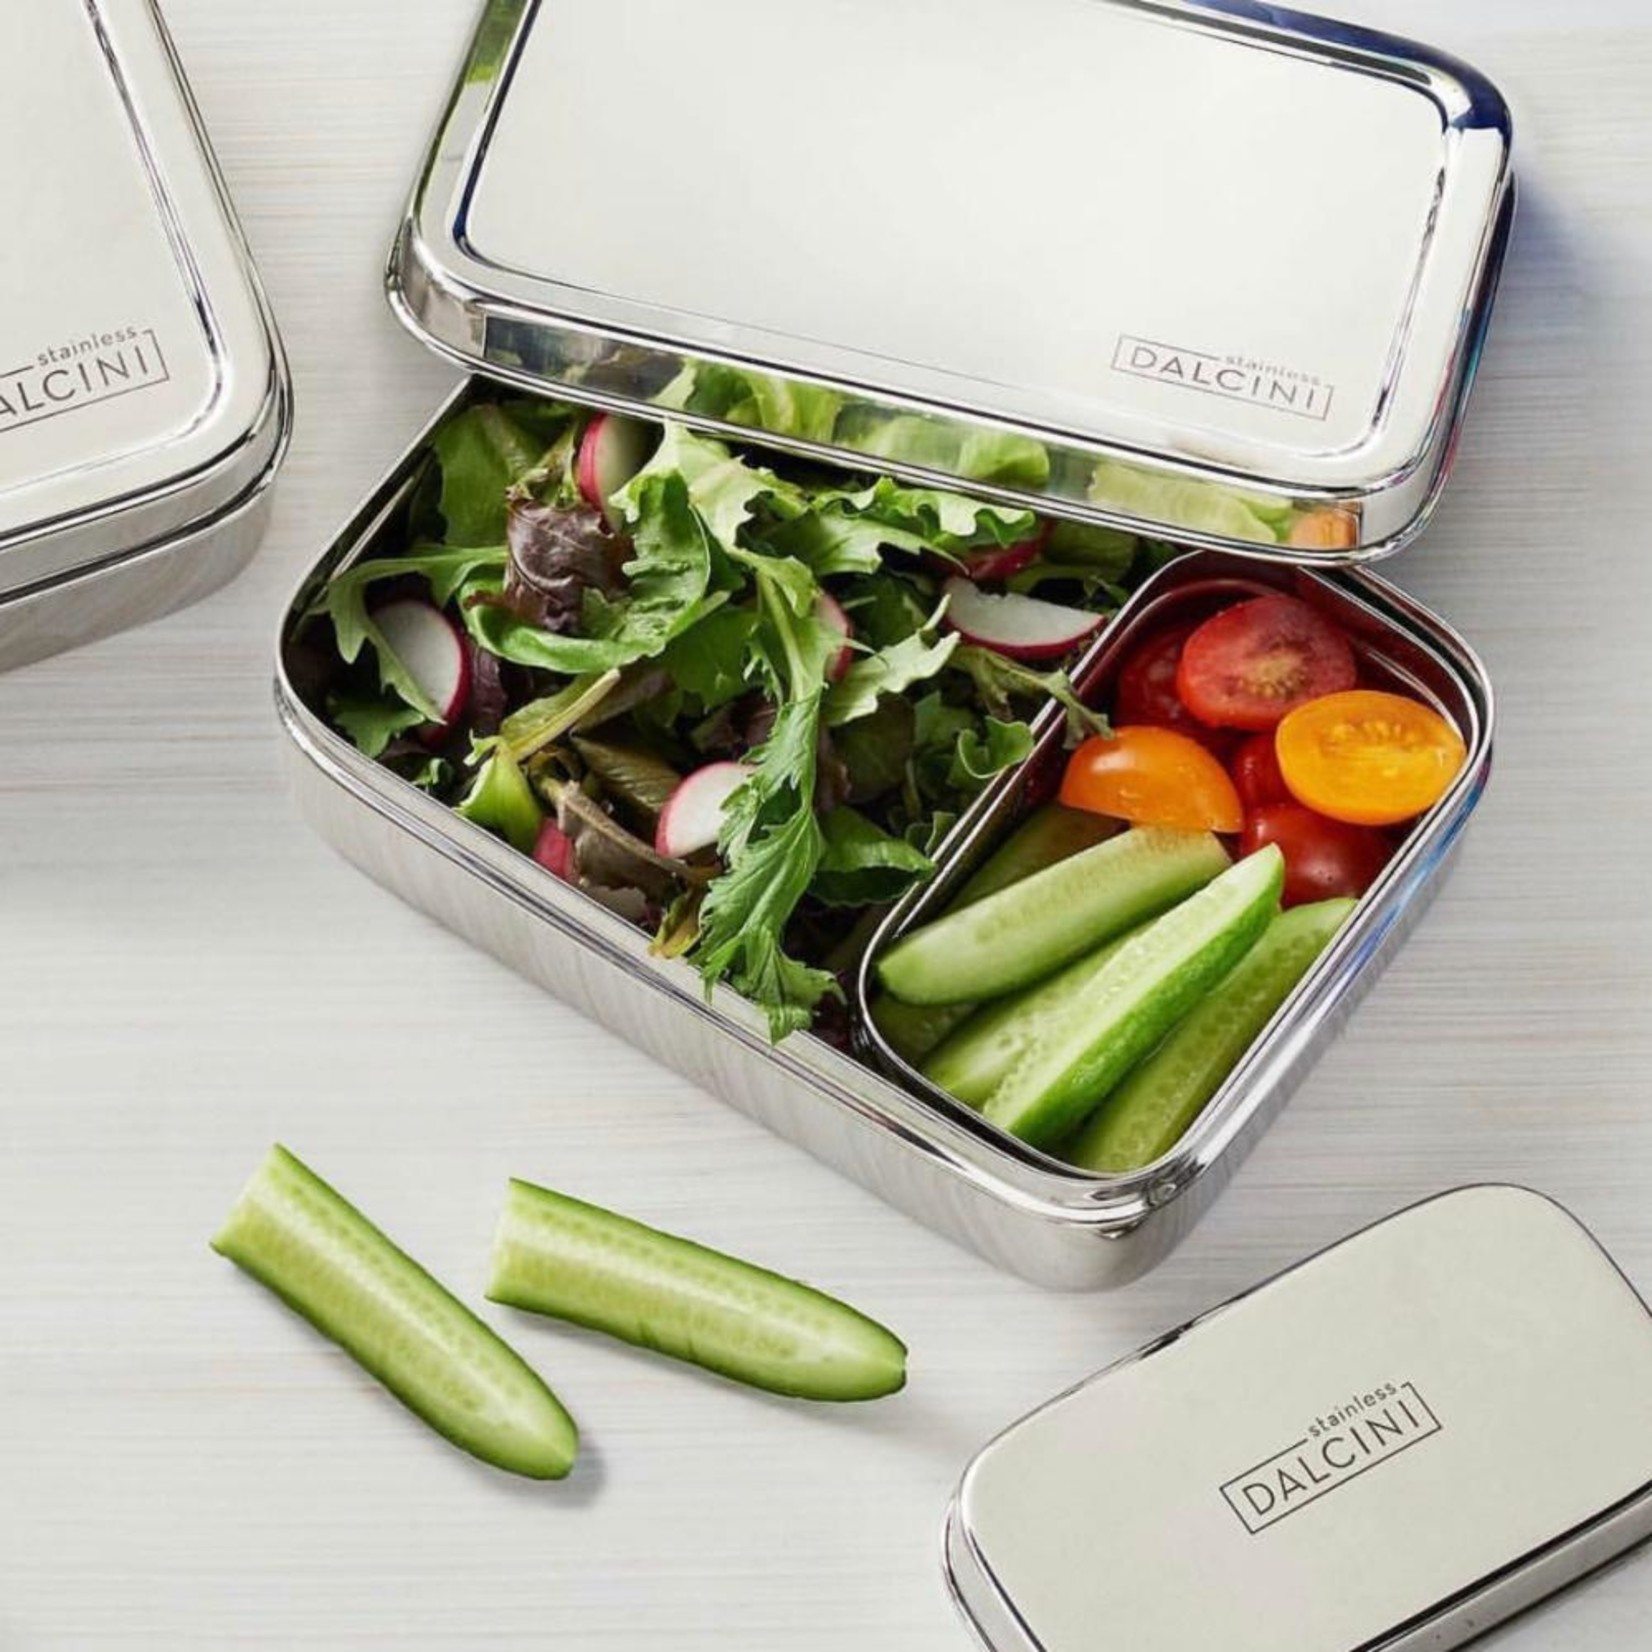 DALCINI STAINLESS 2-PIECE LUNCH SET